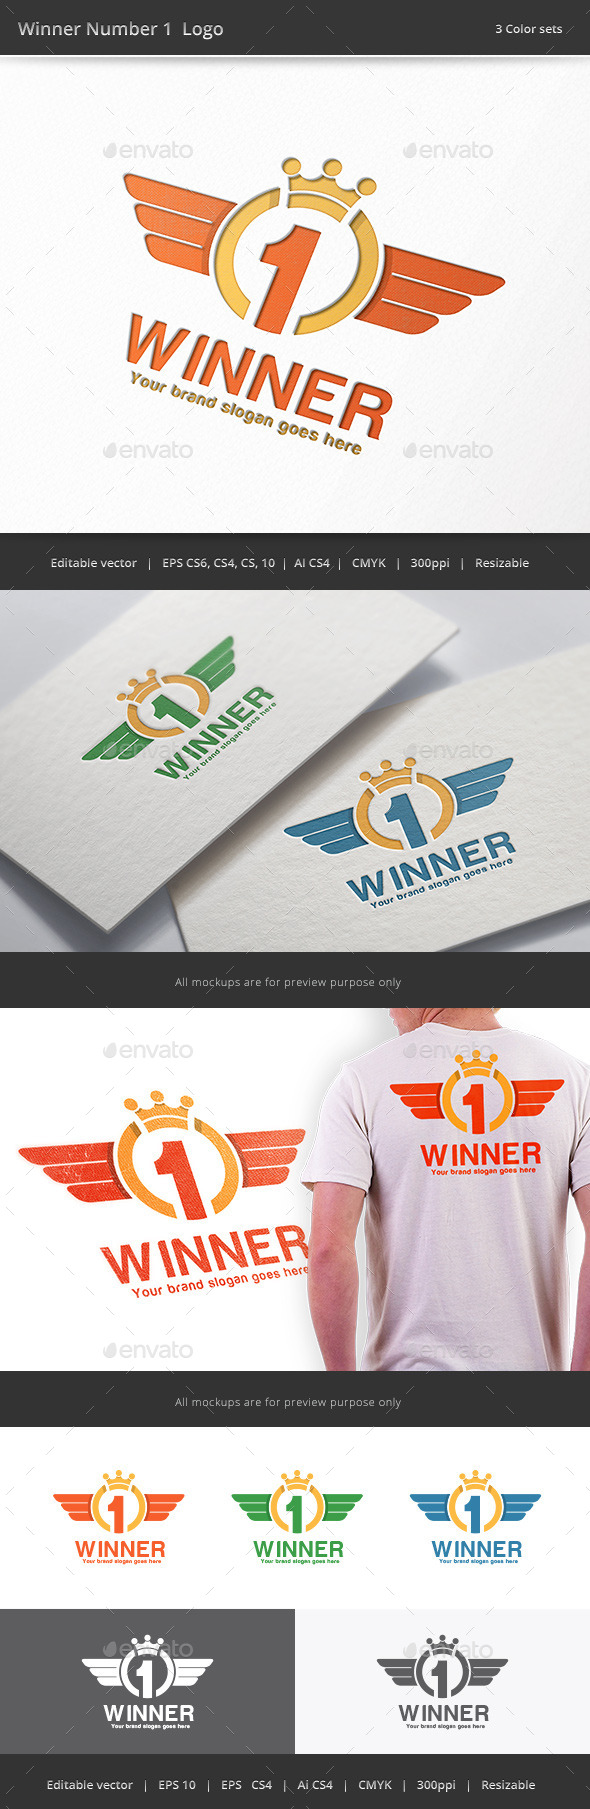 Winner Number 1 Logo - Numbers Logo Templates